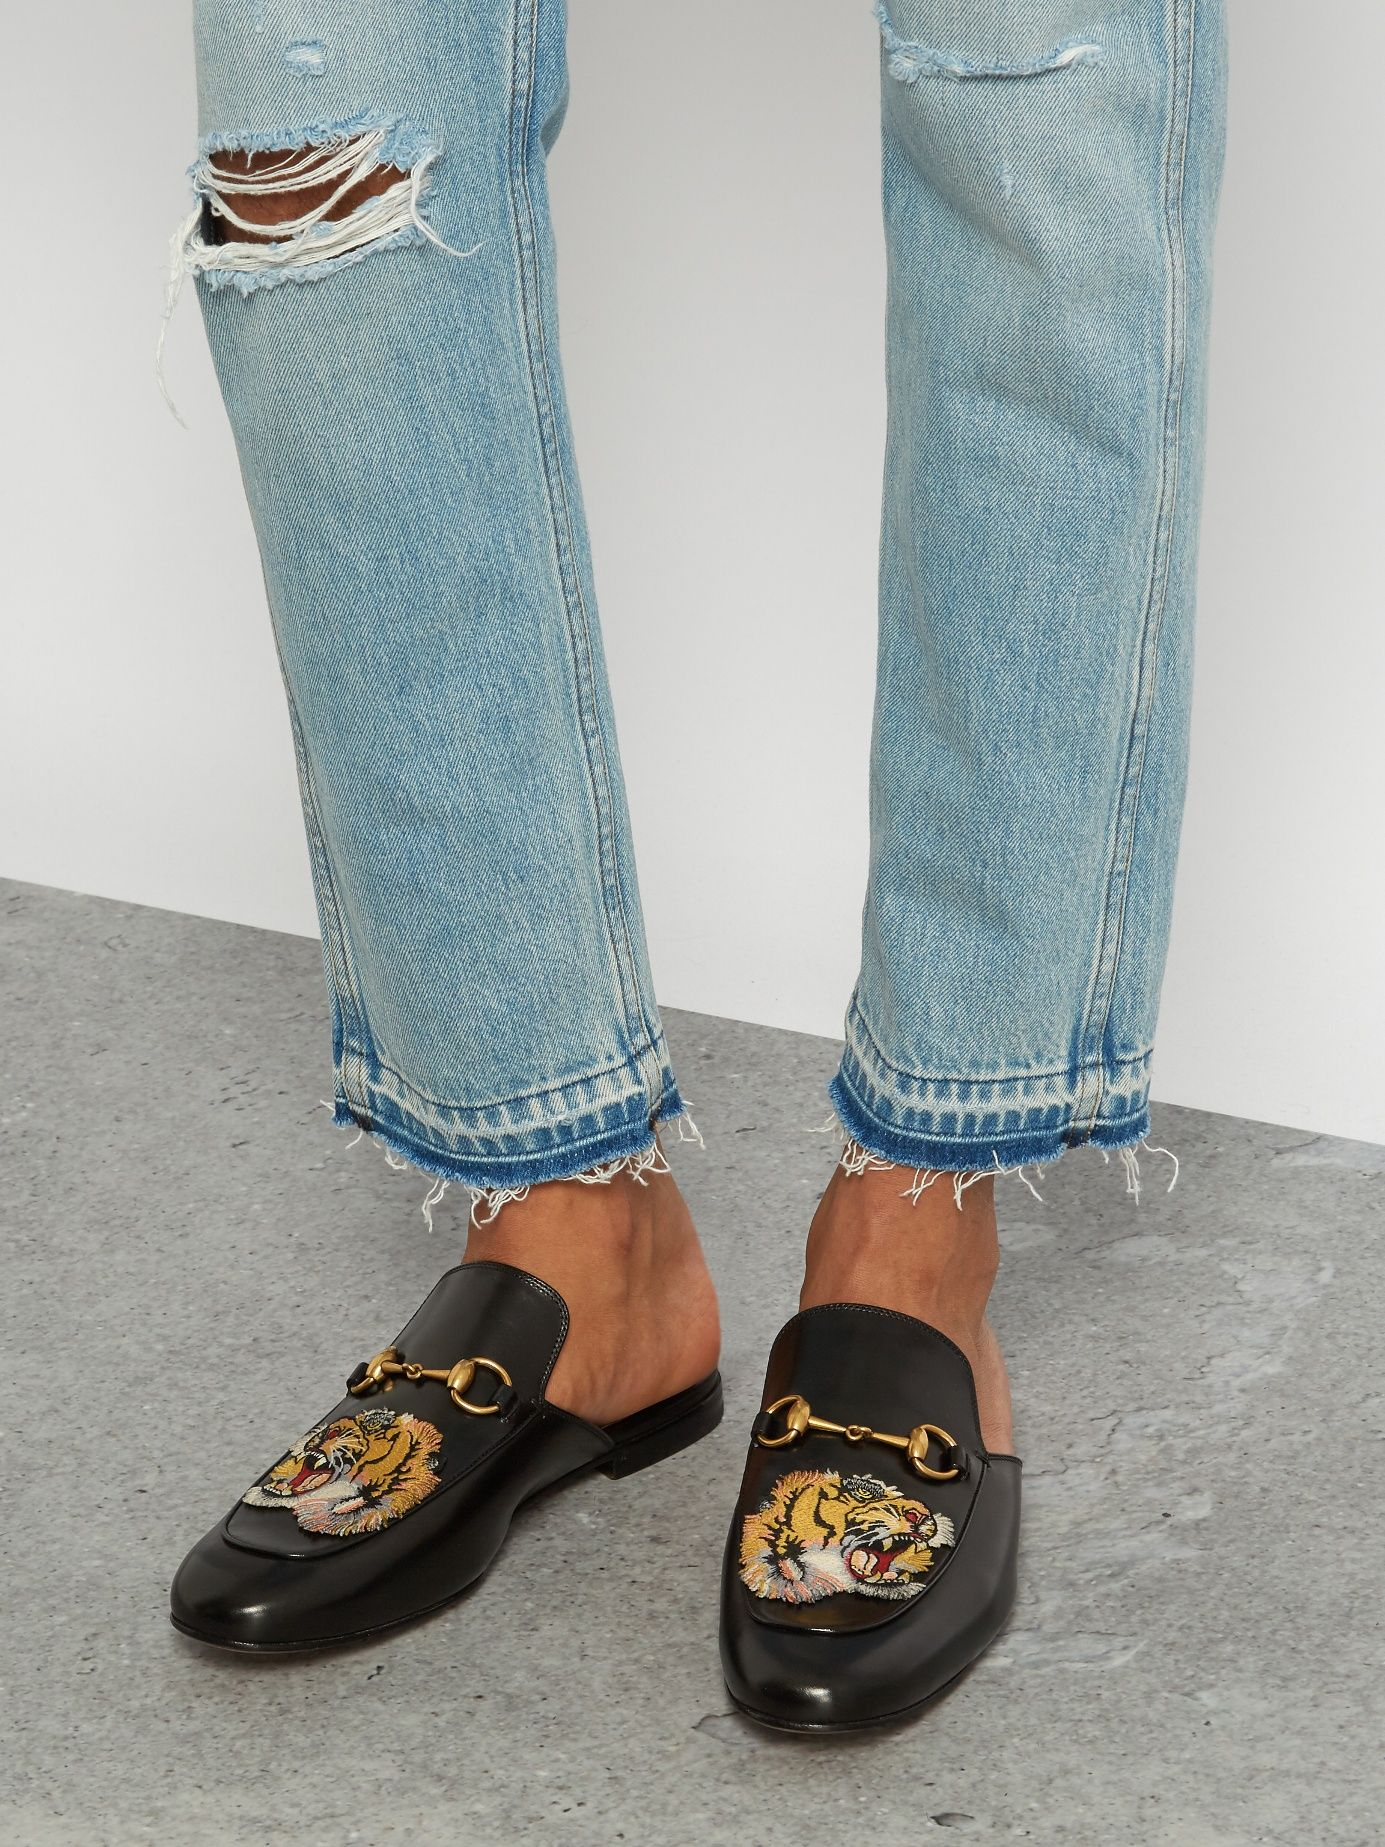 345b7bfe9 Click here to buy Gucci Tiger-head embroidered backless loafers at  MATCHESFASHION.COM